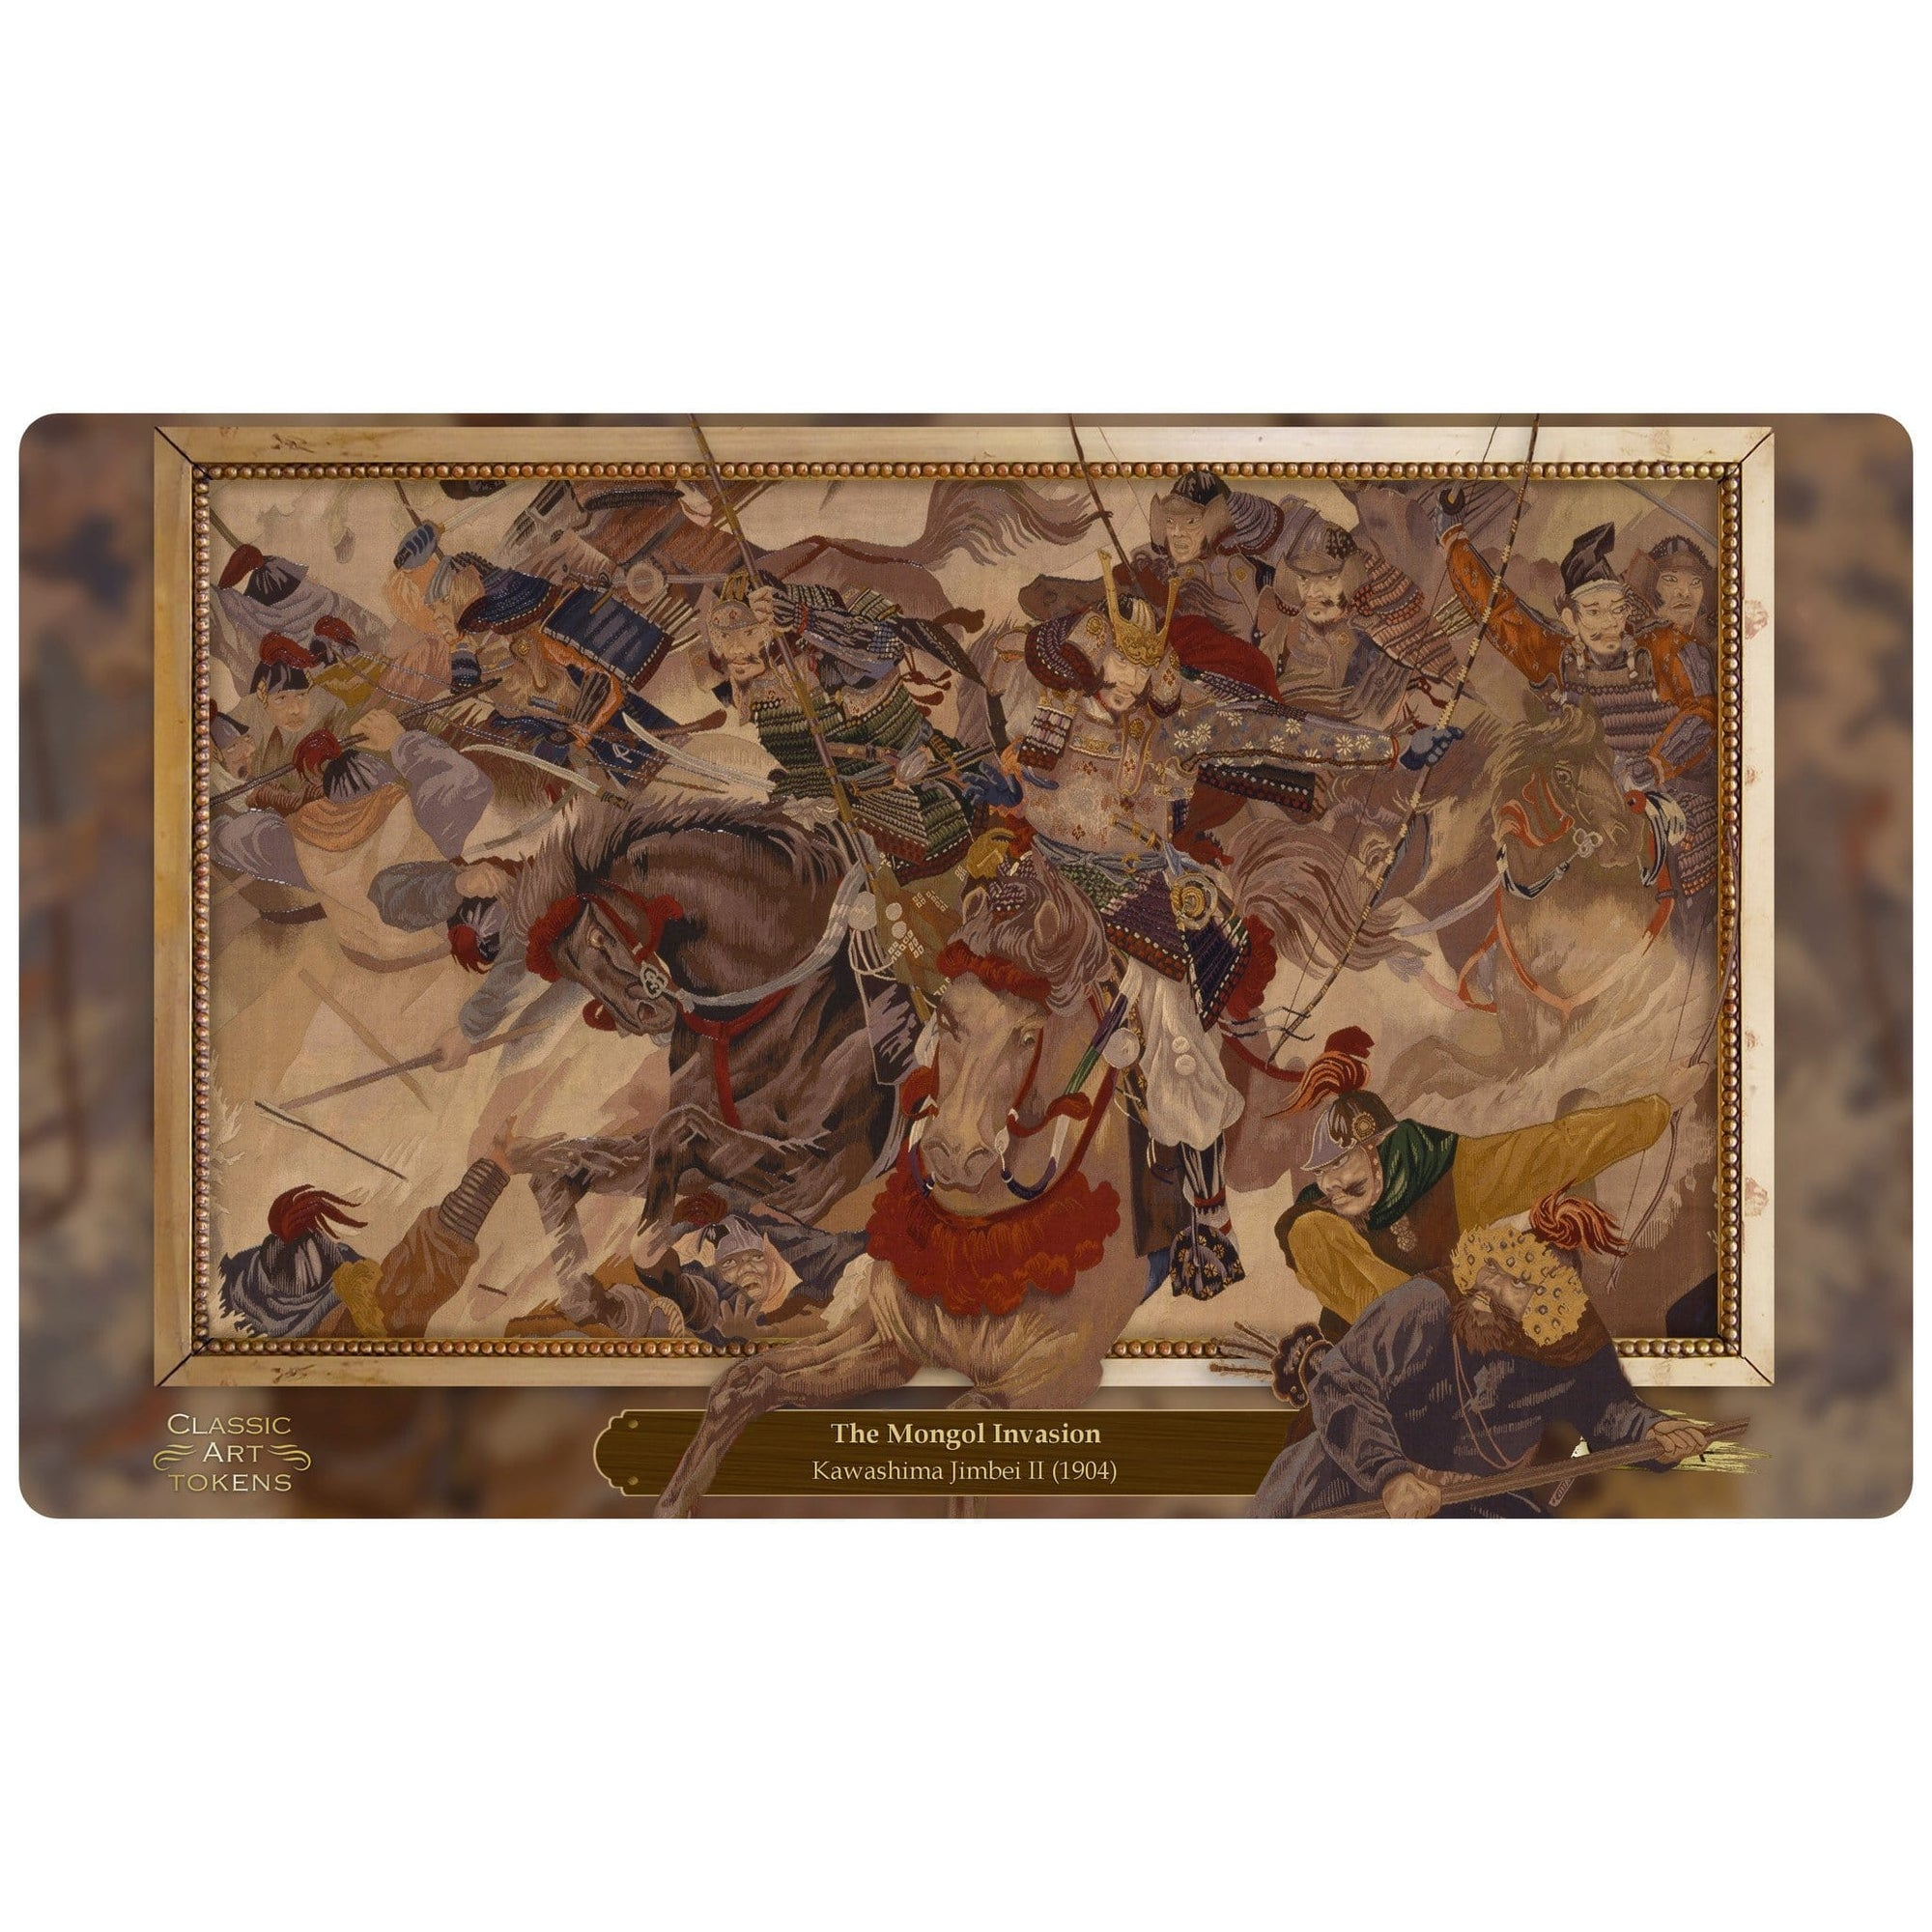 Khans Playmat by Kawashima Jimbei II - Playmat - Original Magic Art - Accessories for Magic the Gathering and other card games